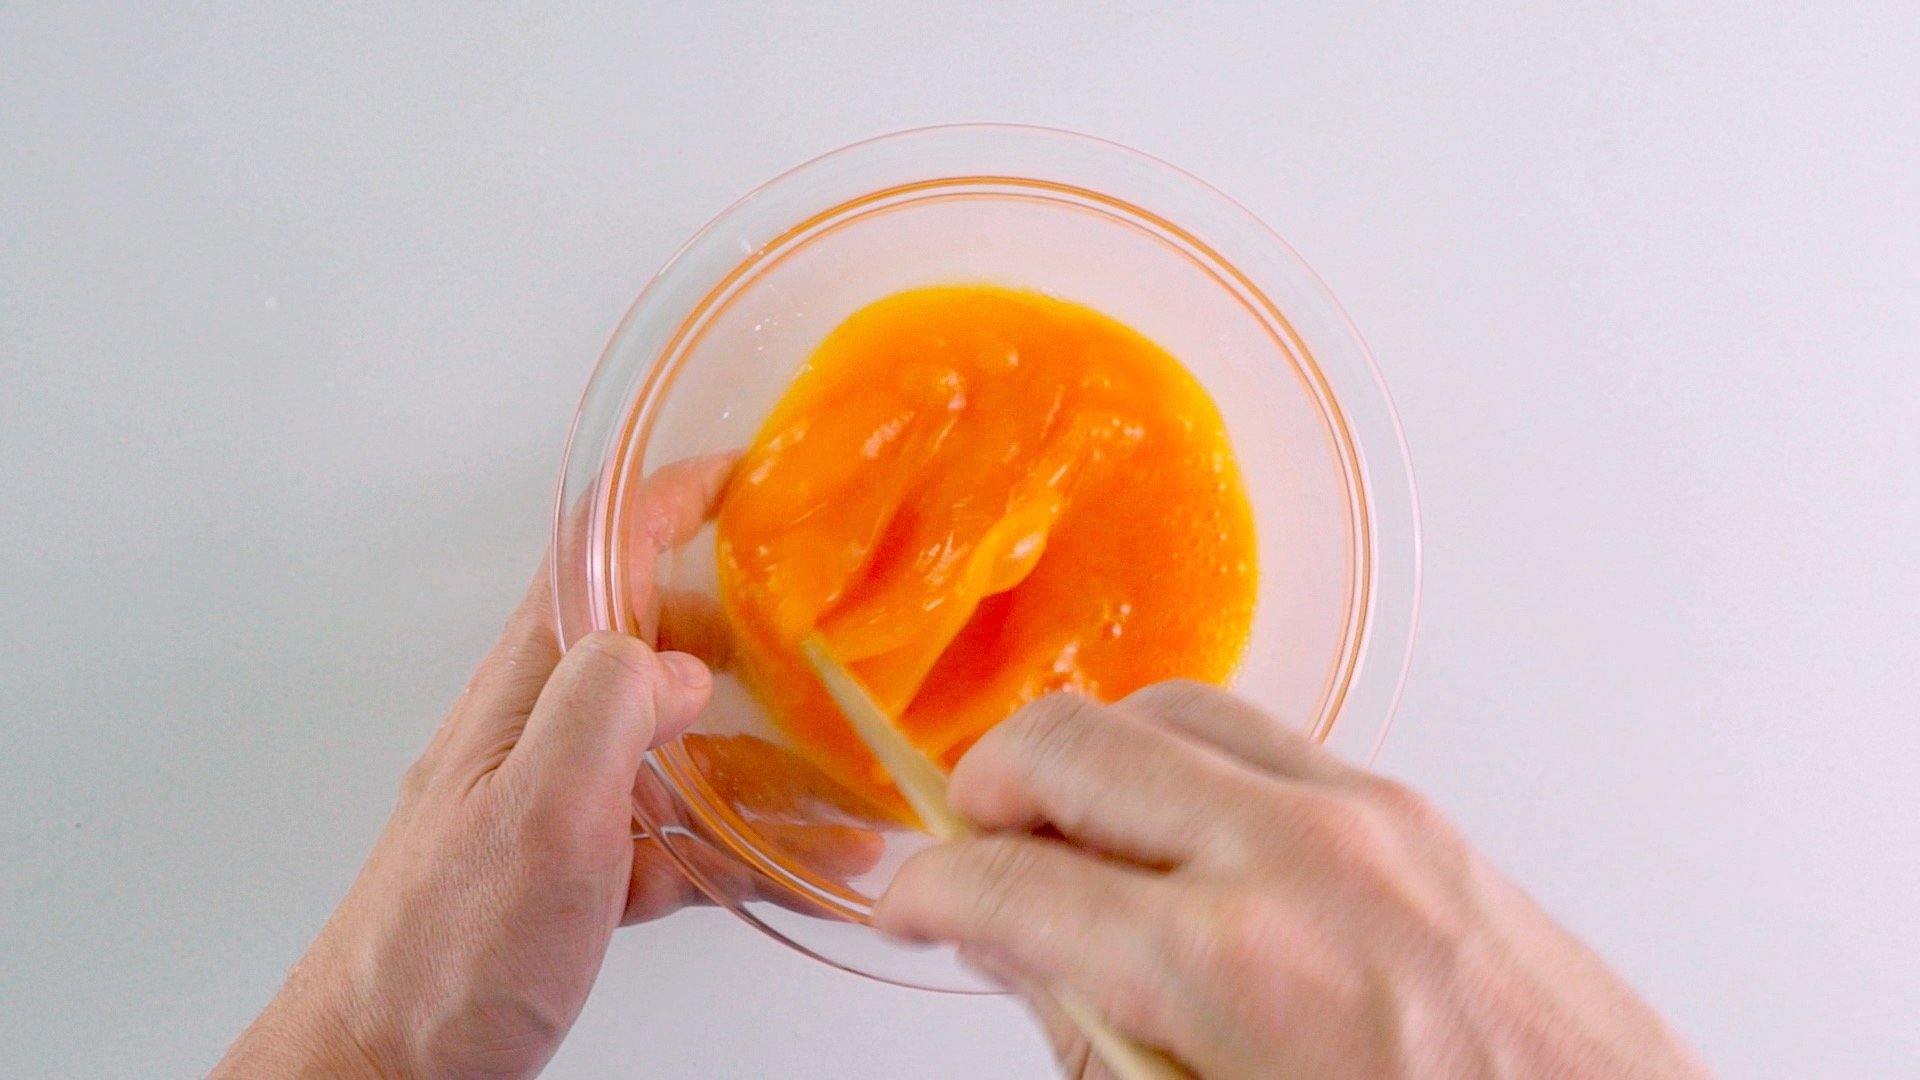 Beating eggs in a glass bowl with chopsticks.